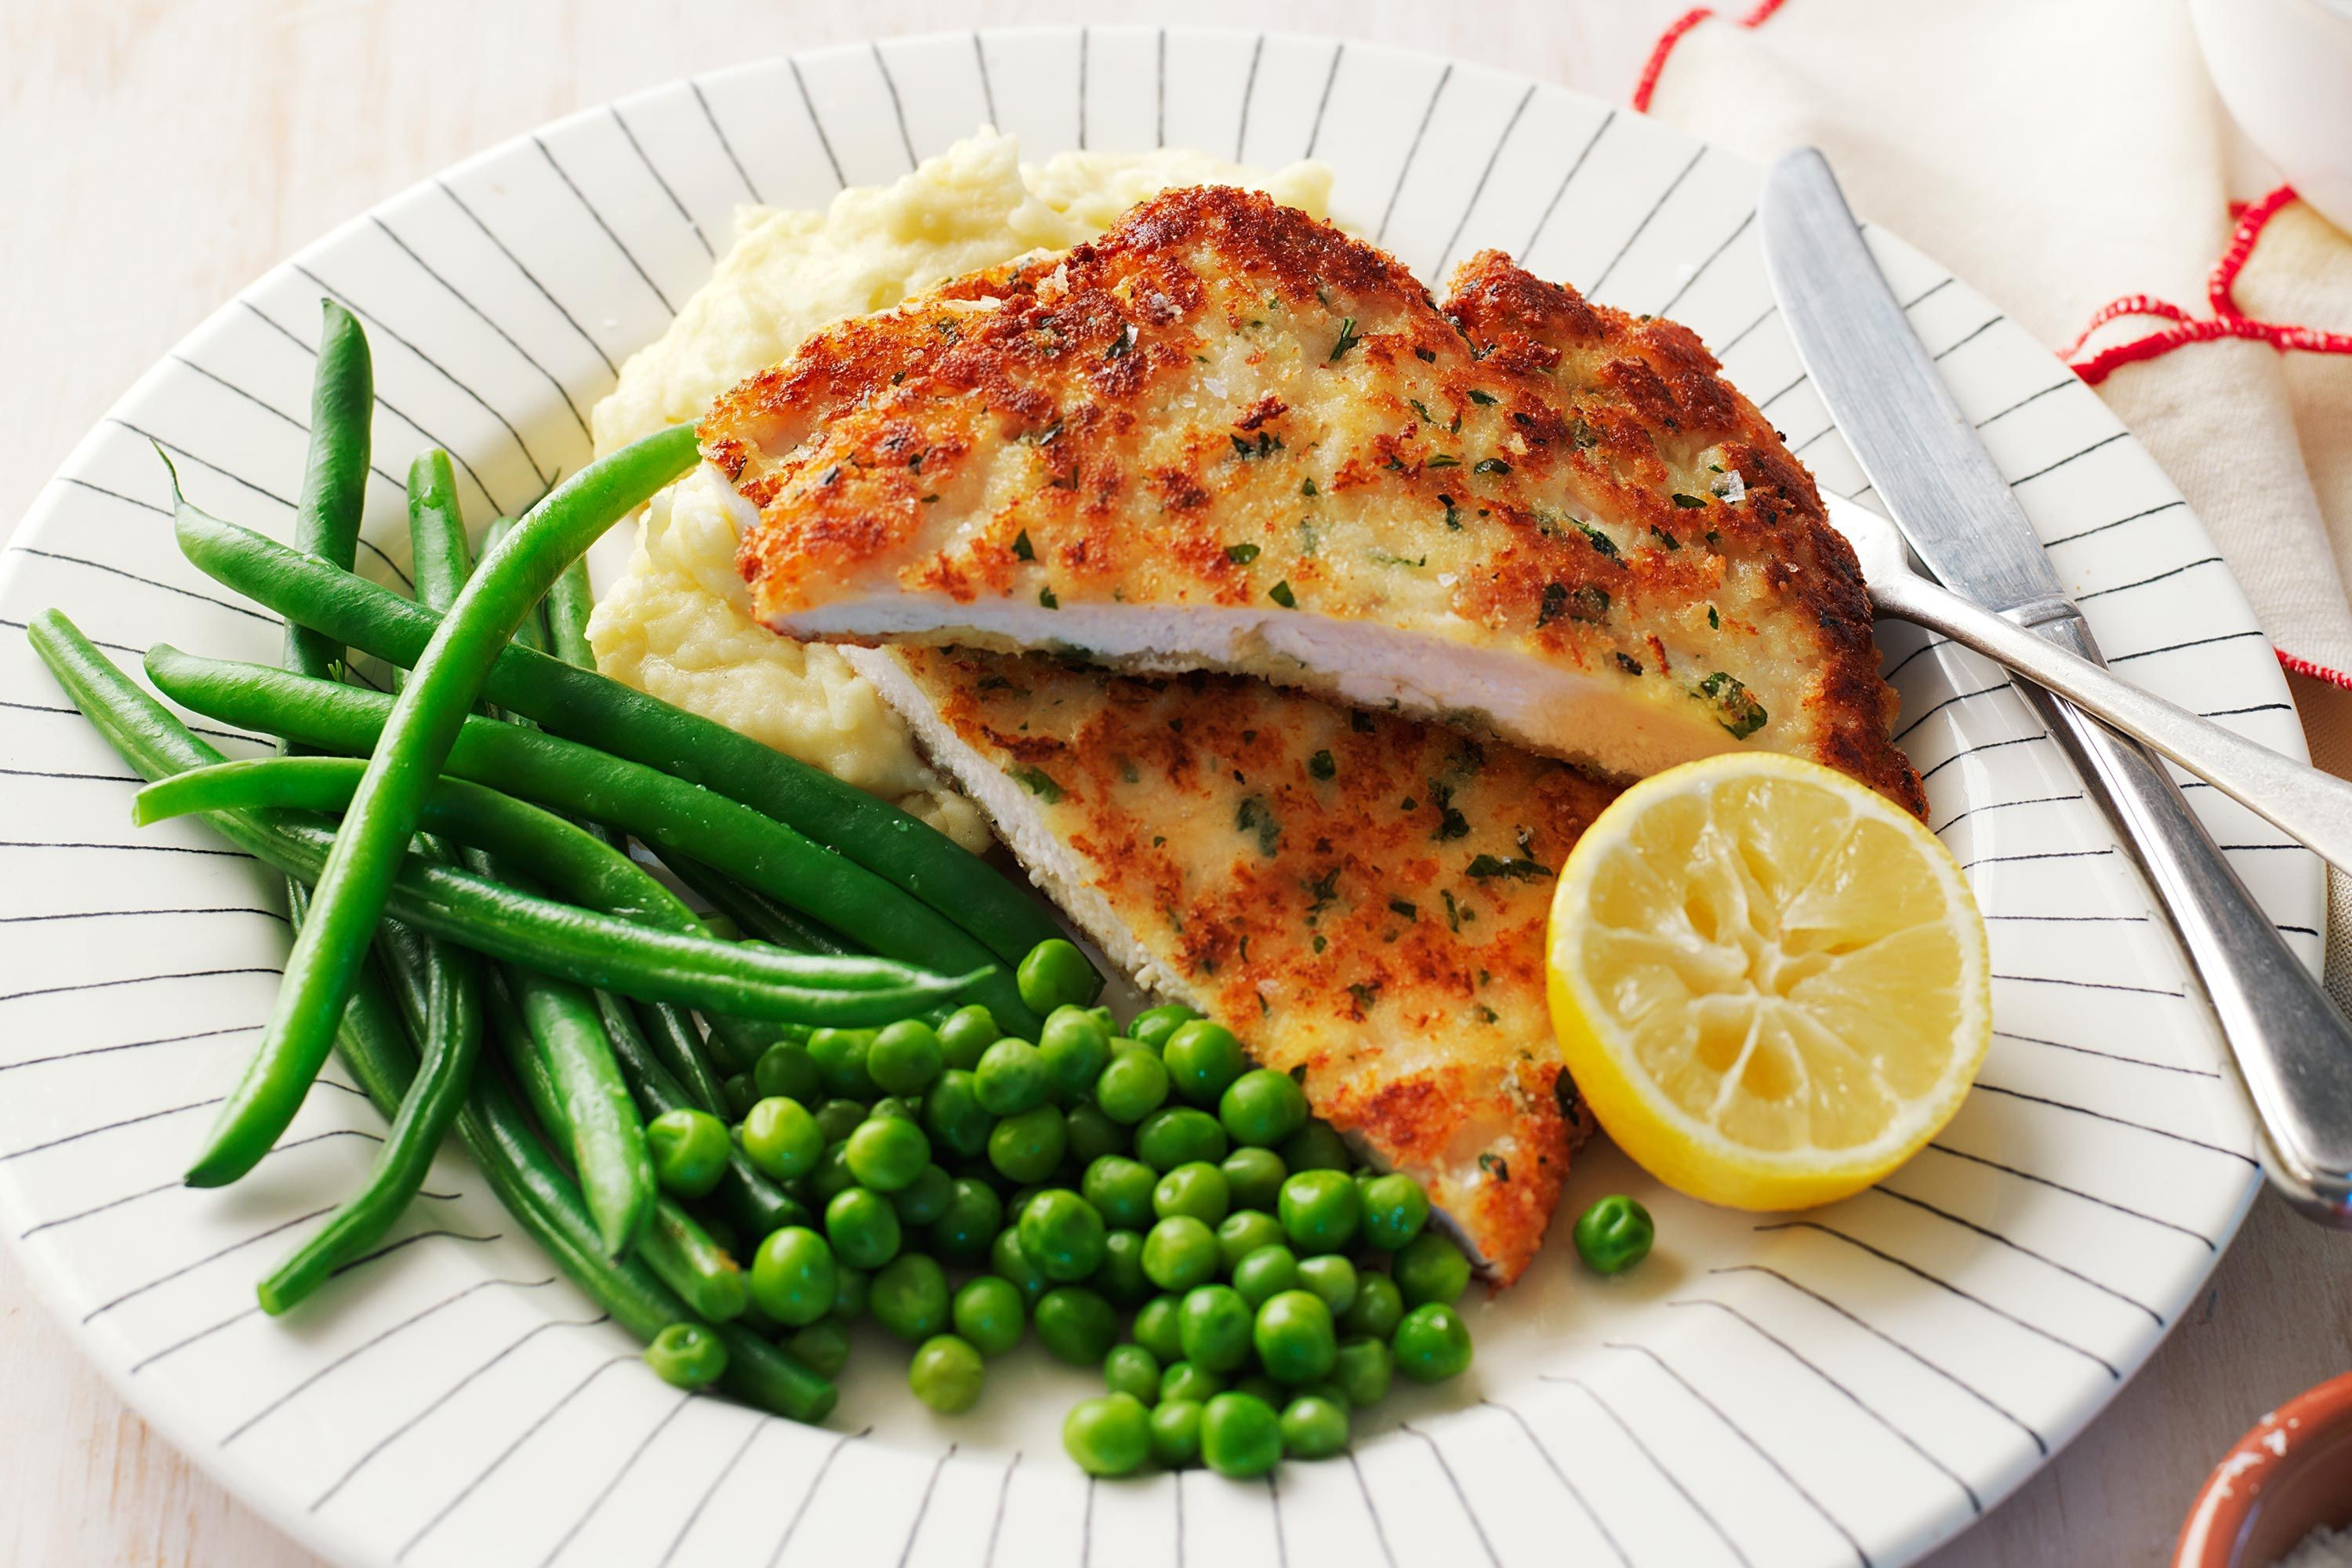 chicken-schnitzel-with-cheesy-mash-beans-and-peas-107918-1